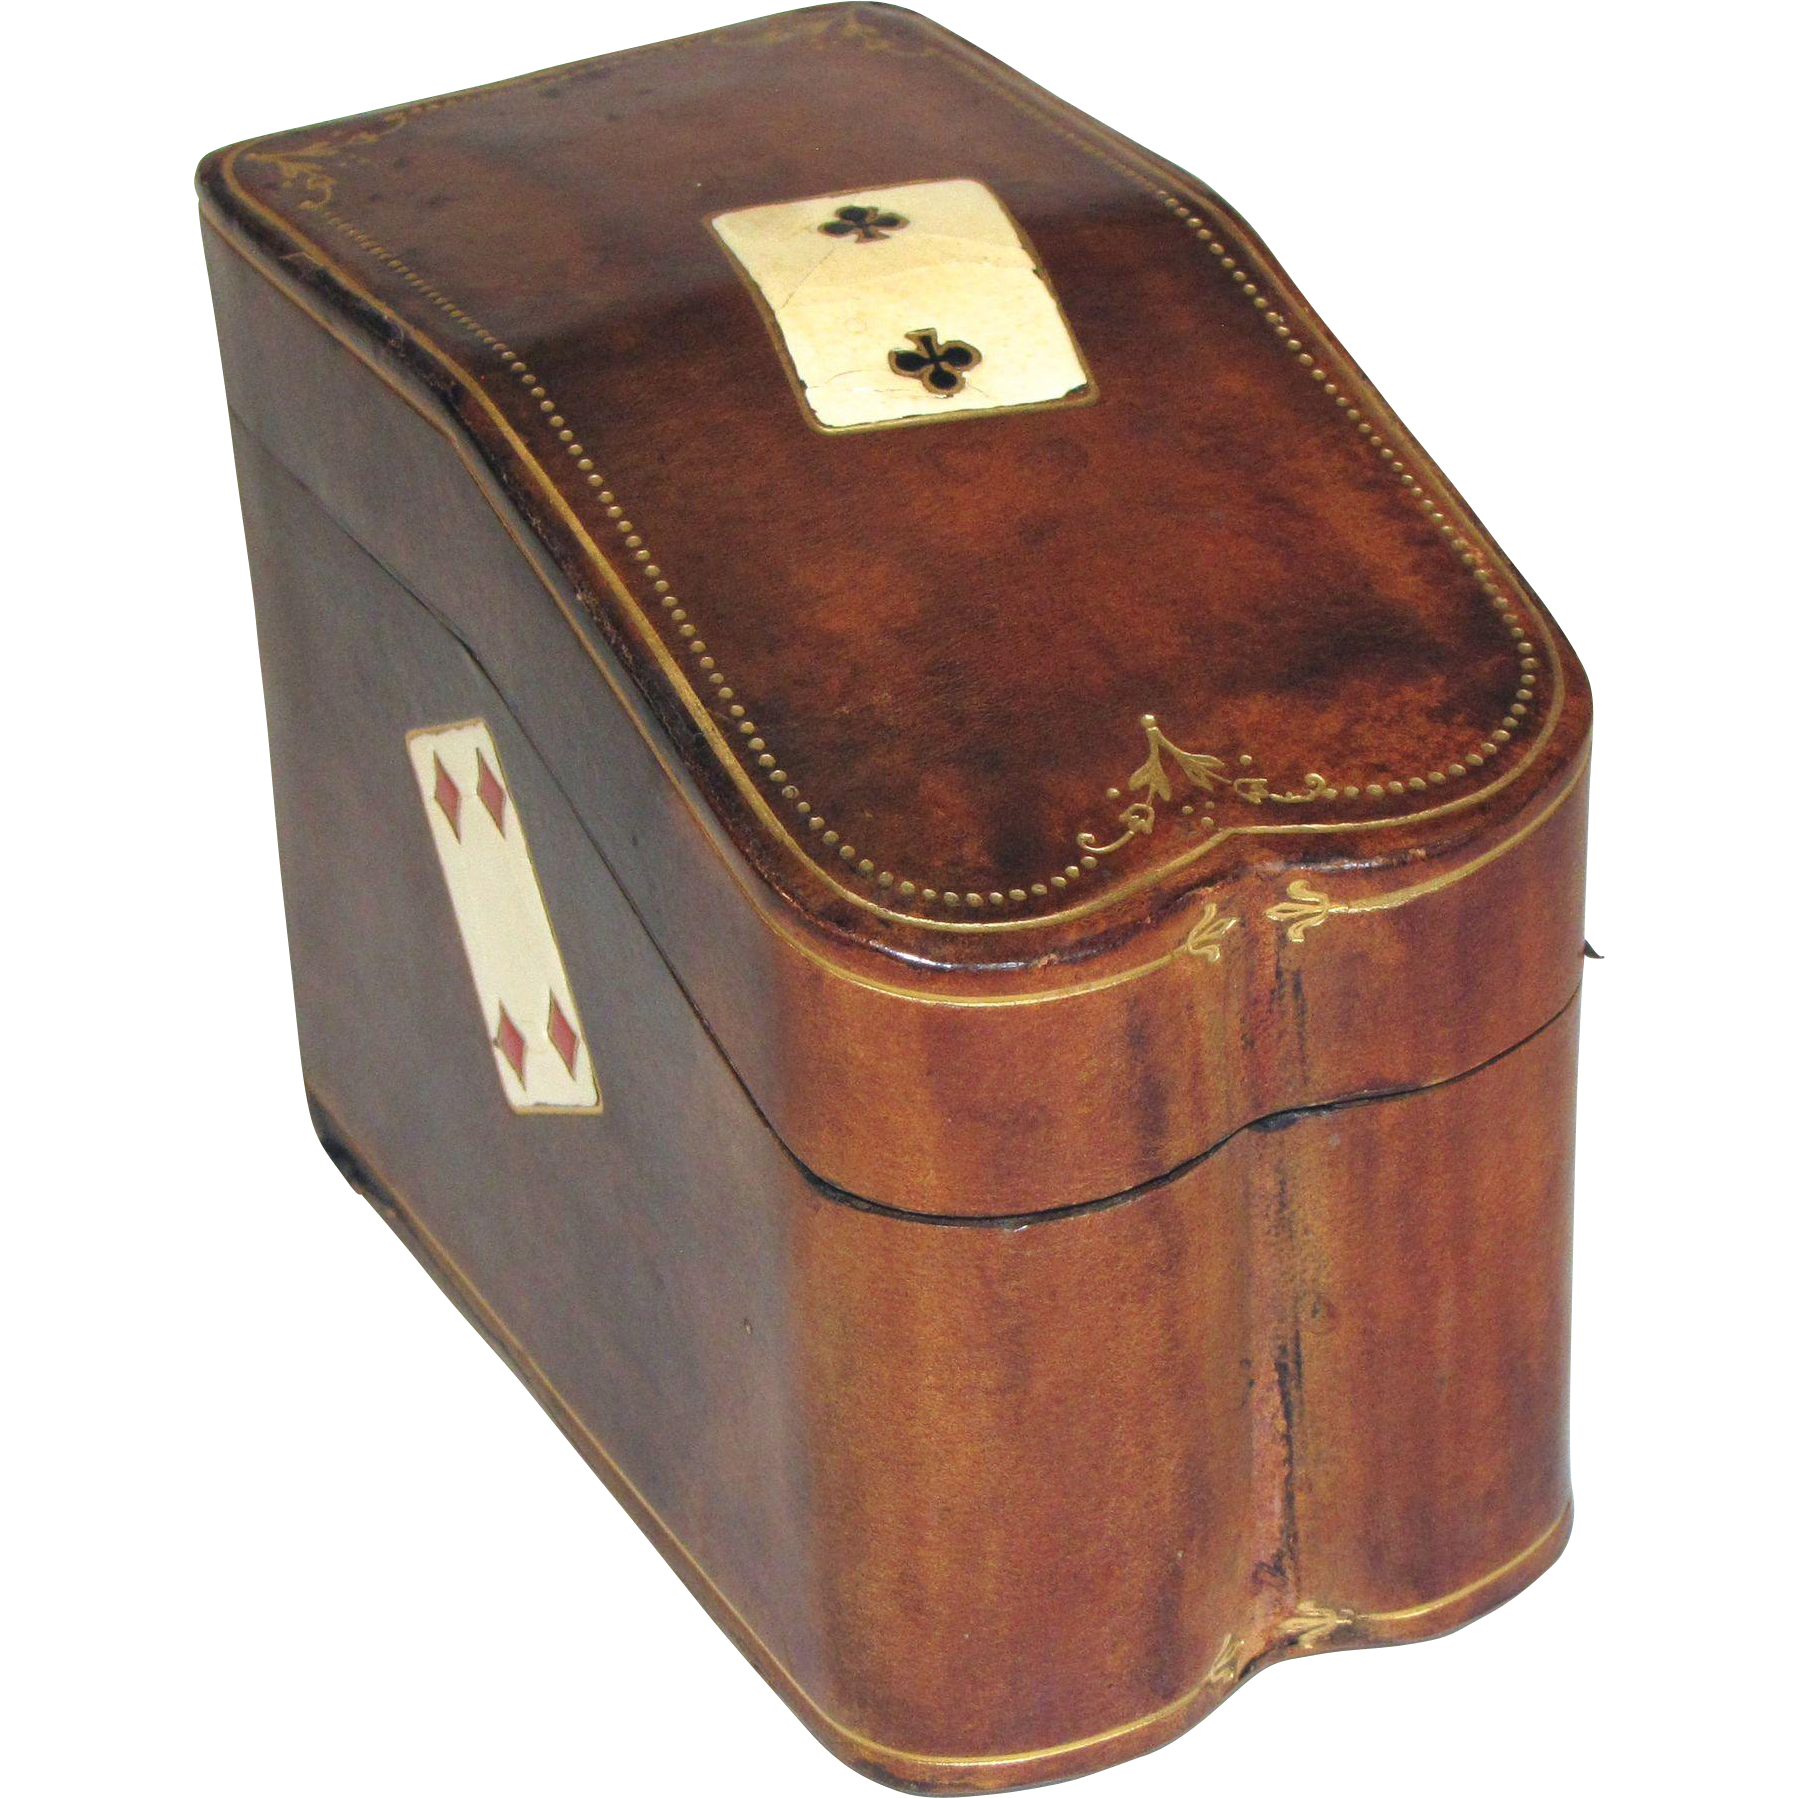 Vintage Leather Covered Playing Card Box, 2 Decks